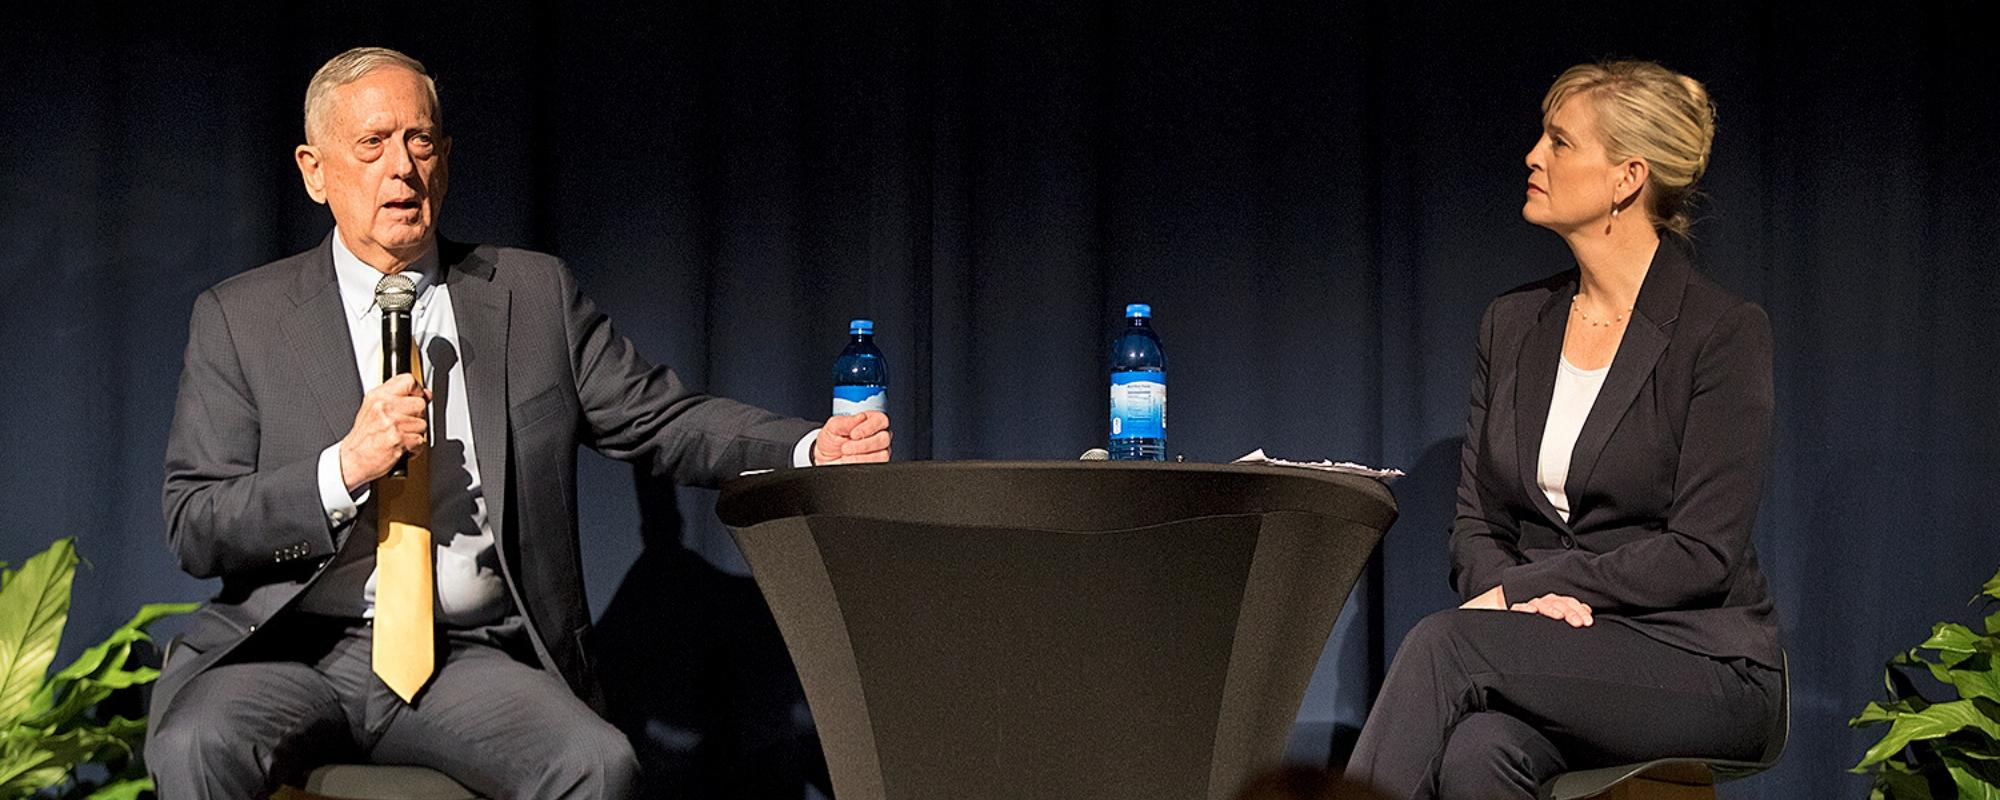 Former Secretary of Defense Jim Mattis and CAI Director Jeannie Johnson discuss a question during a convocation on the USU campus.